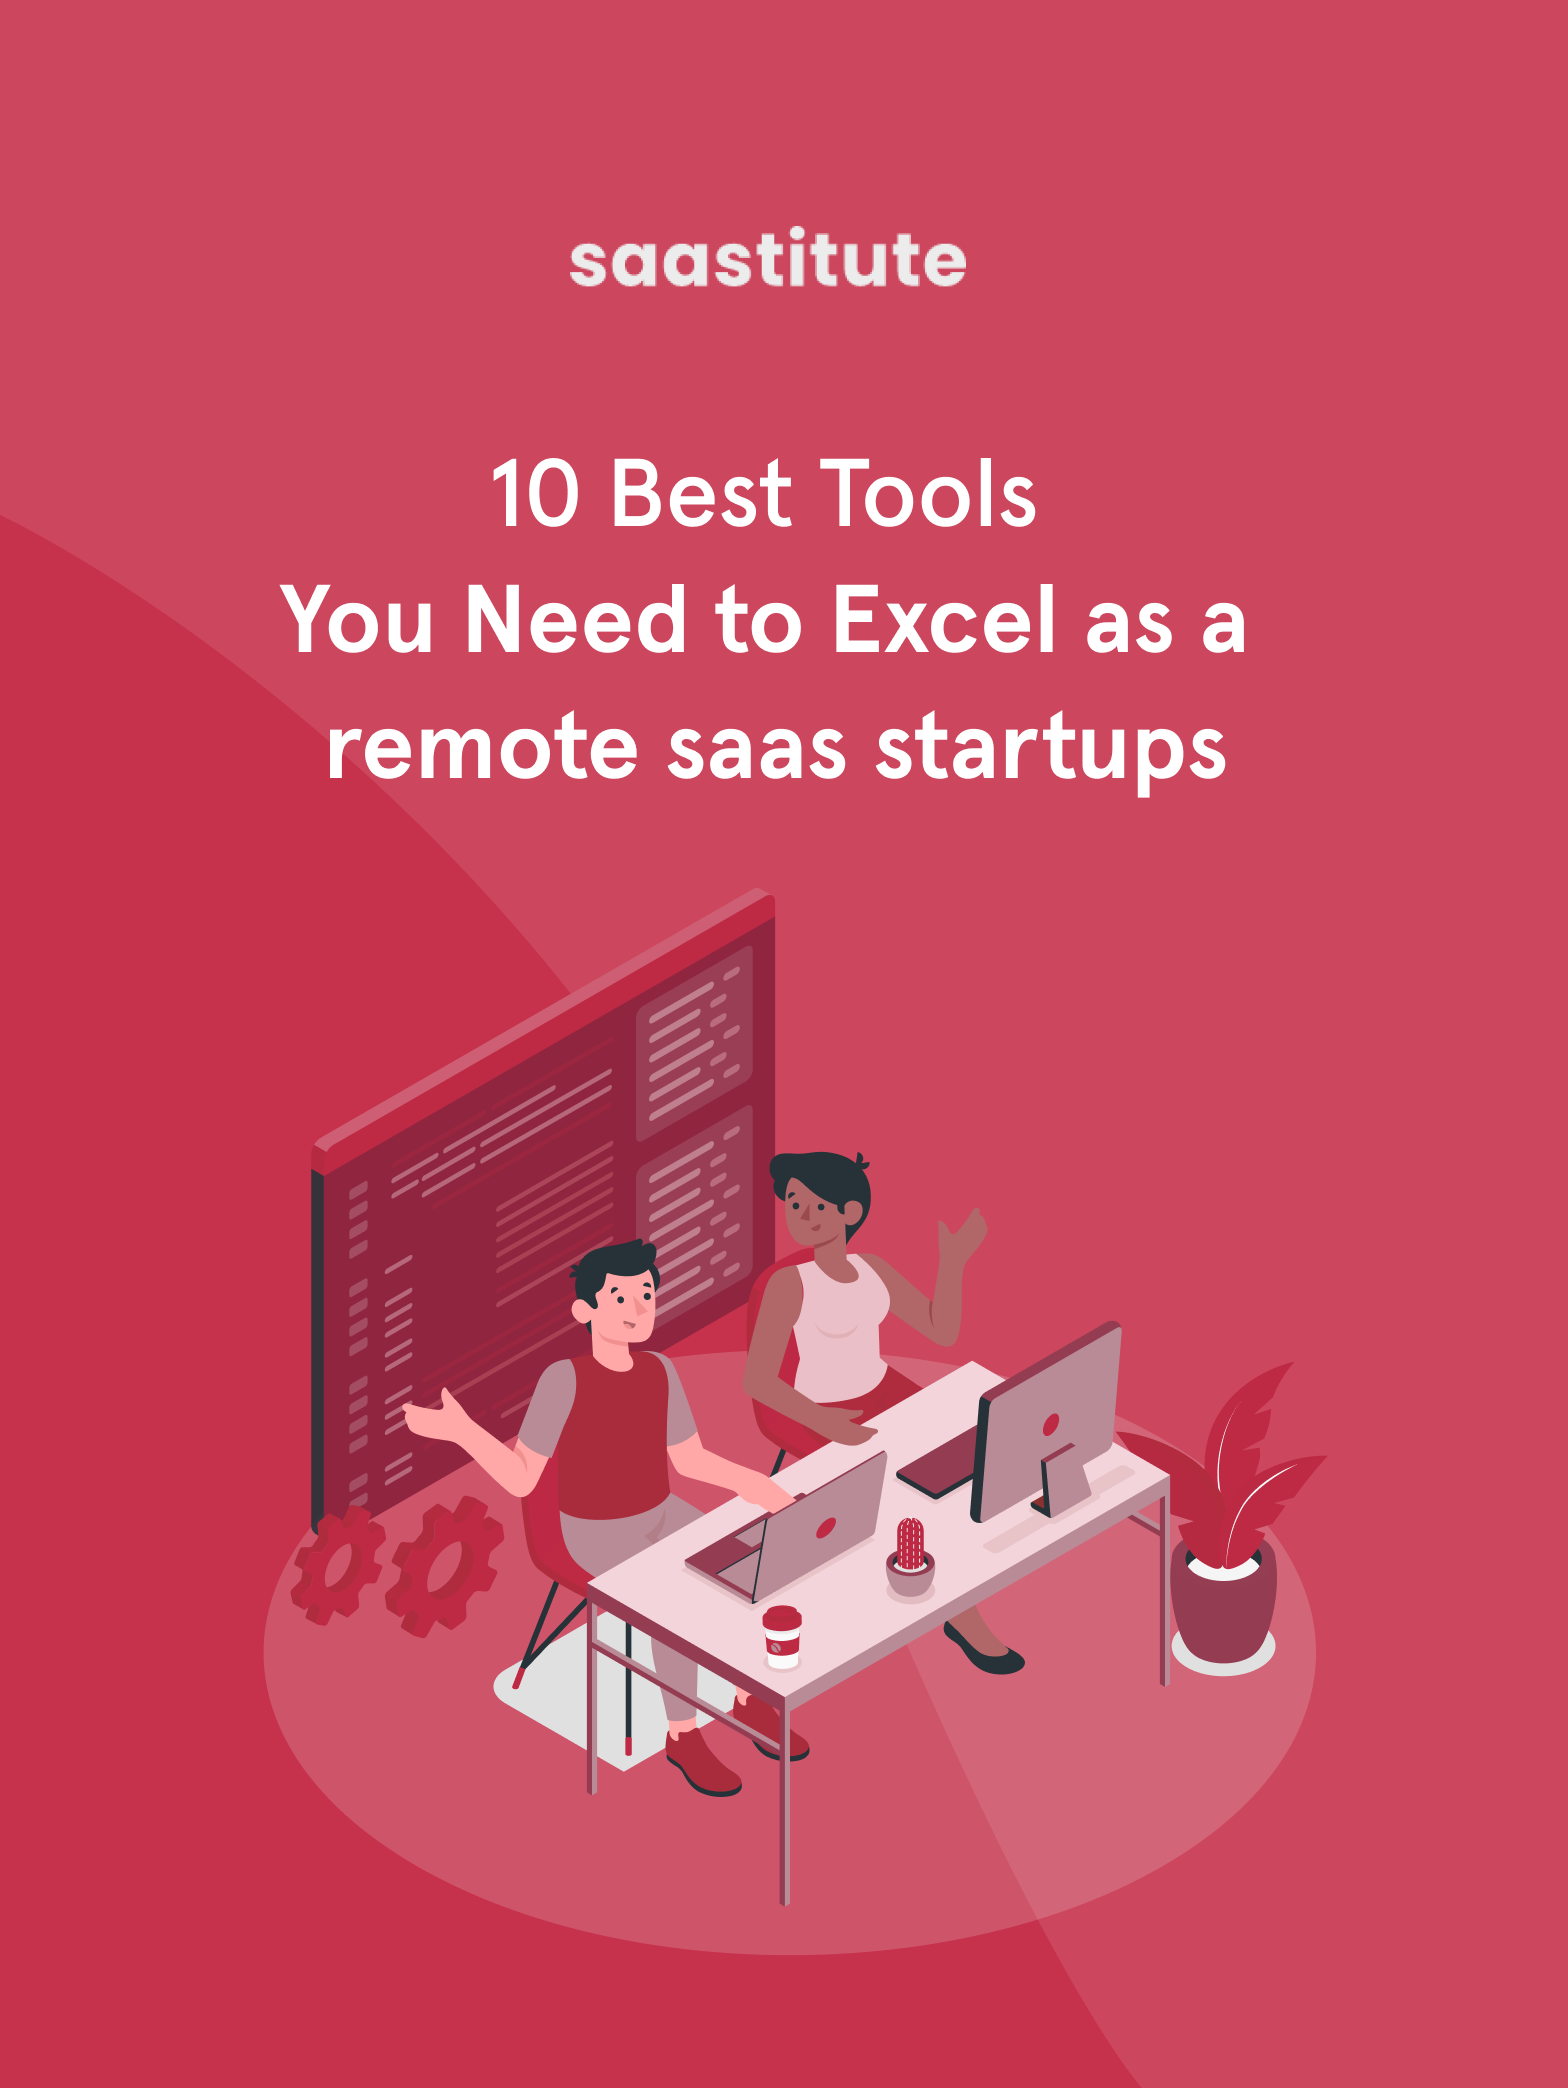 10 Best Tools You Need to Excel as a Remote SaaS Startup